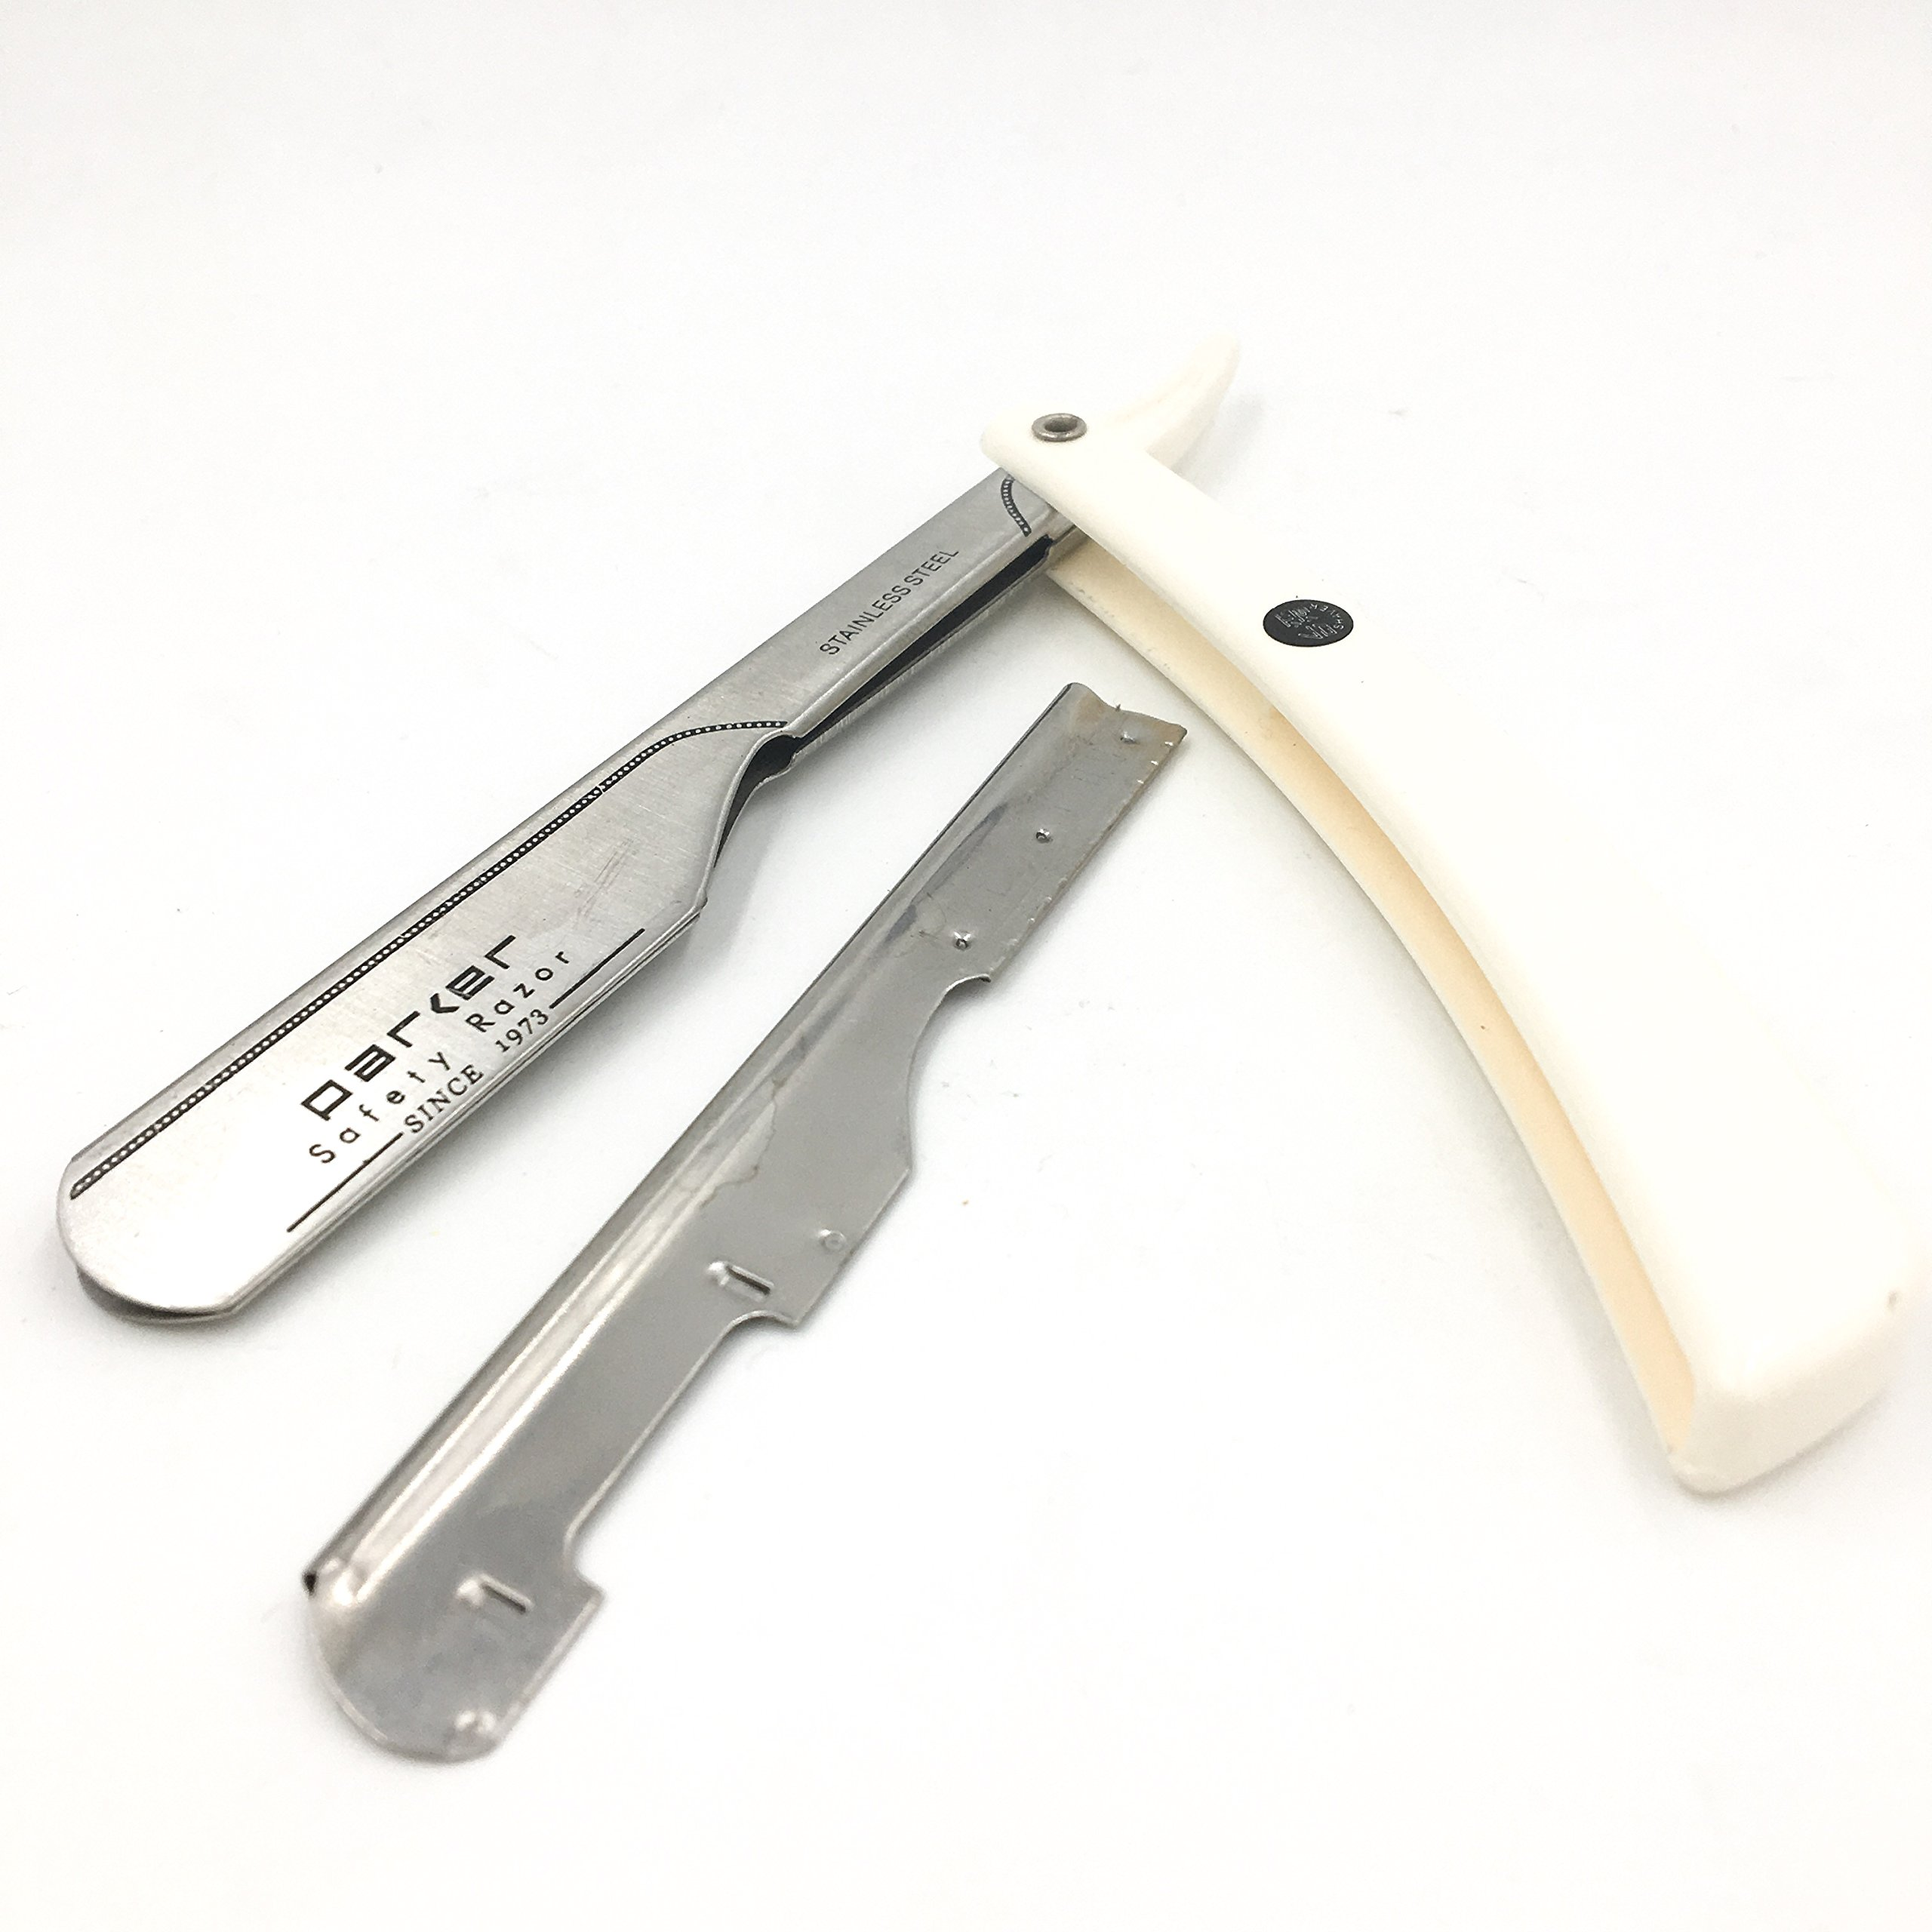 Parker PTW''Push Type Blade Load'' Straight Edge Barber/Shavette Razor with Stainless Steel Blade Arm and 5 Shark Stainless Blades